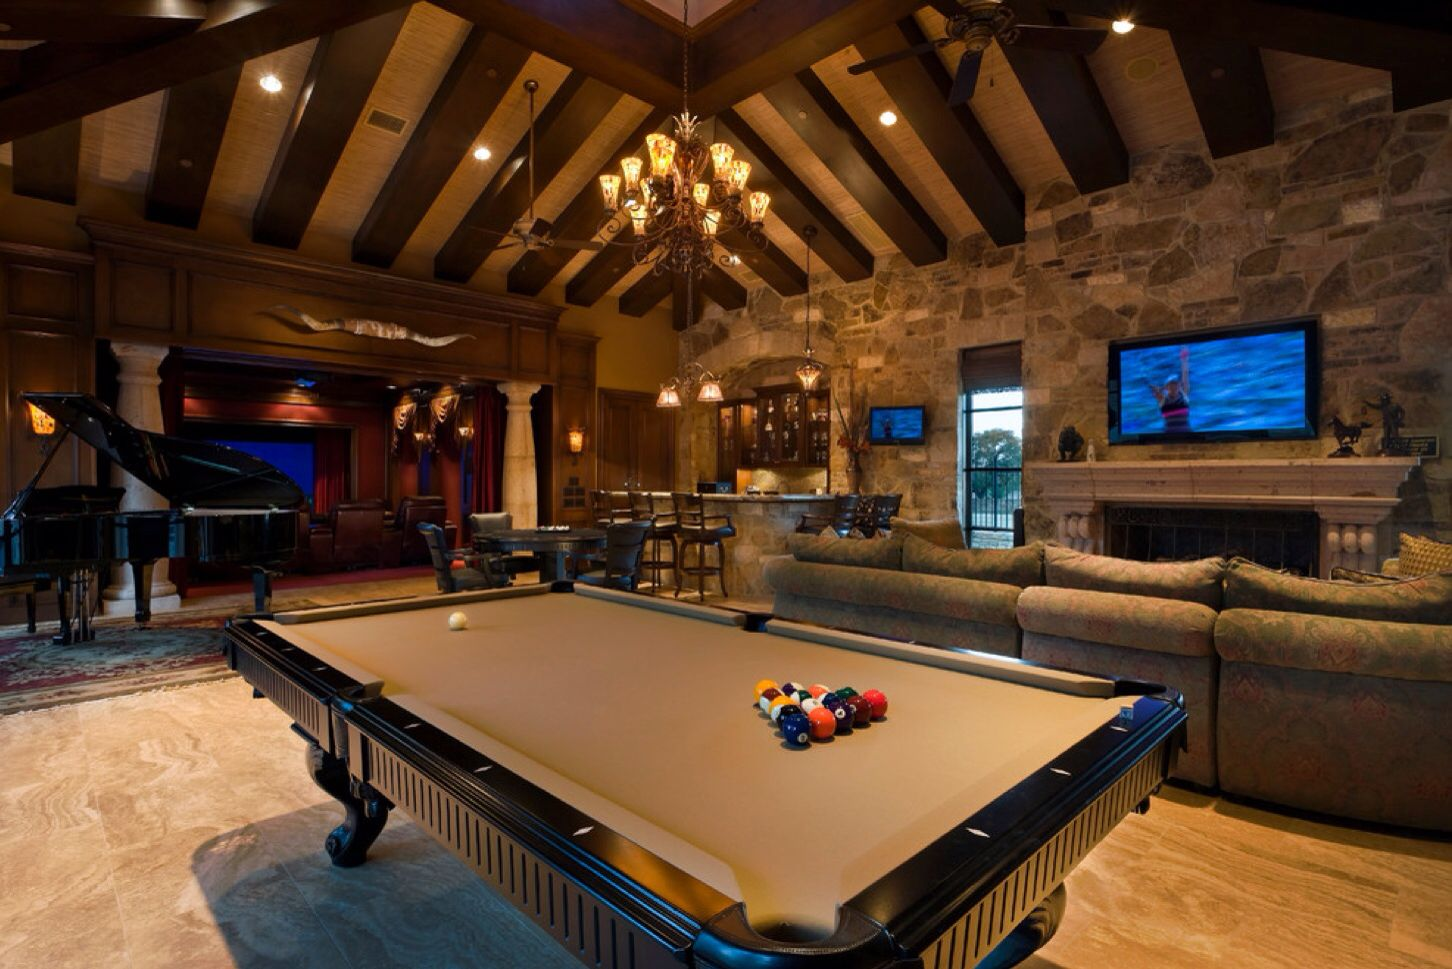 Game room pool table  Home Game Rooms Home Theater Bars